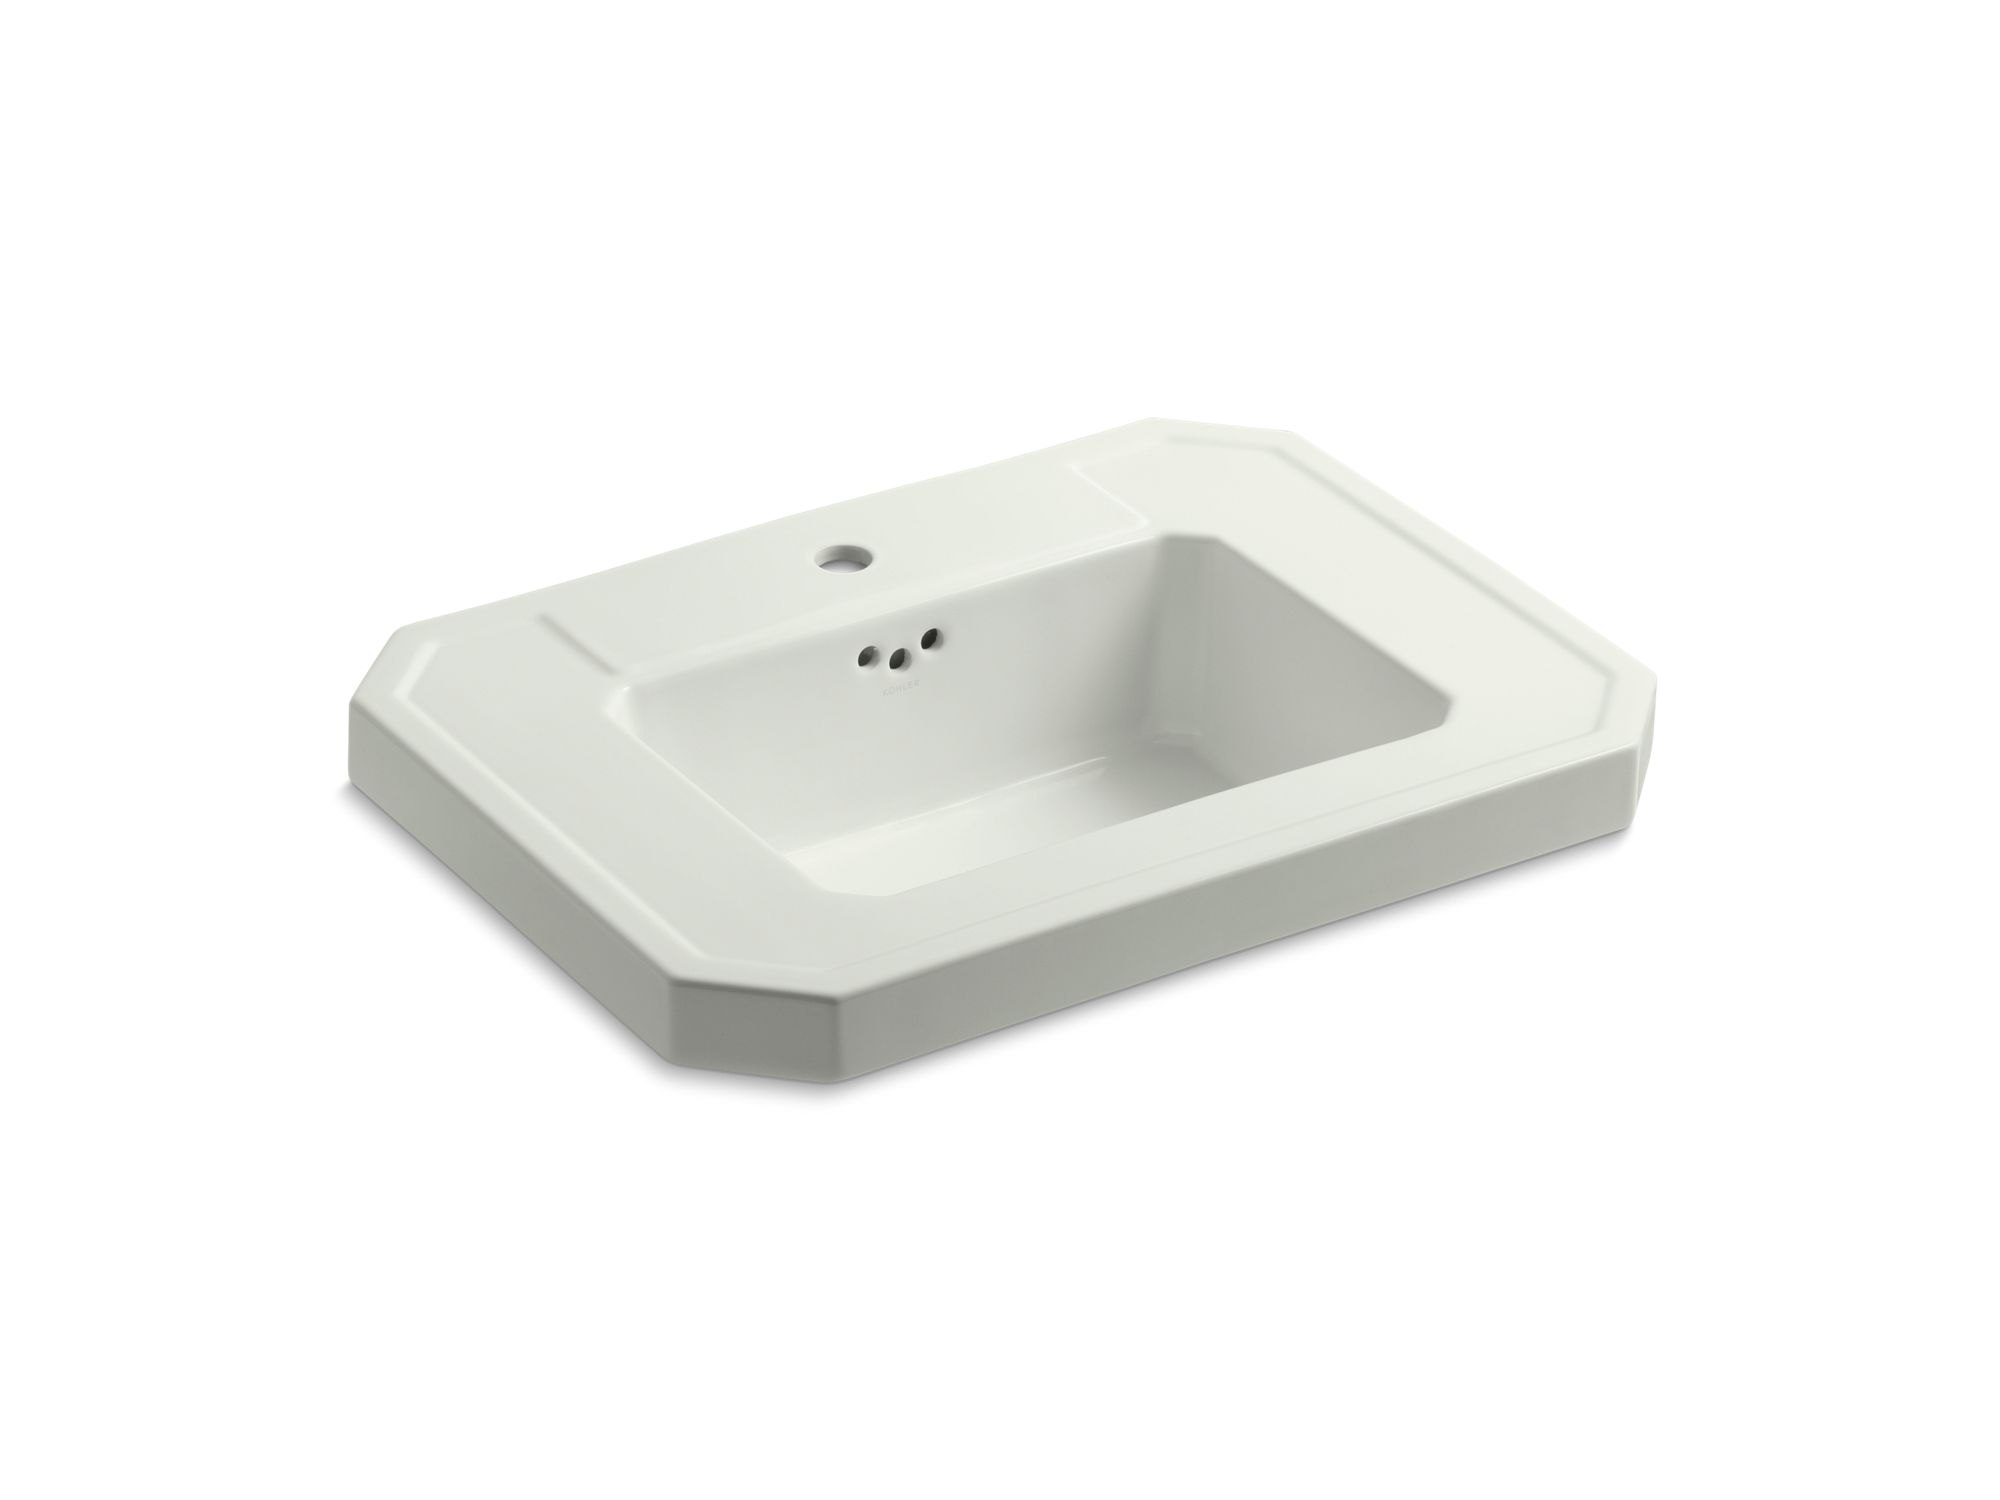 Kohler Kathryn® K-2323-1-NY Bathroom sink basin with single faucet hole Dune